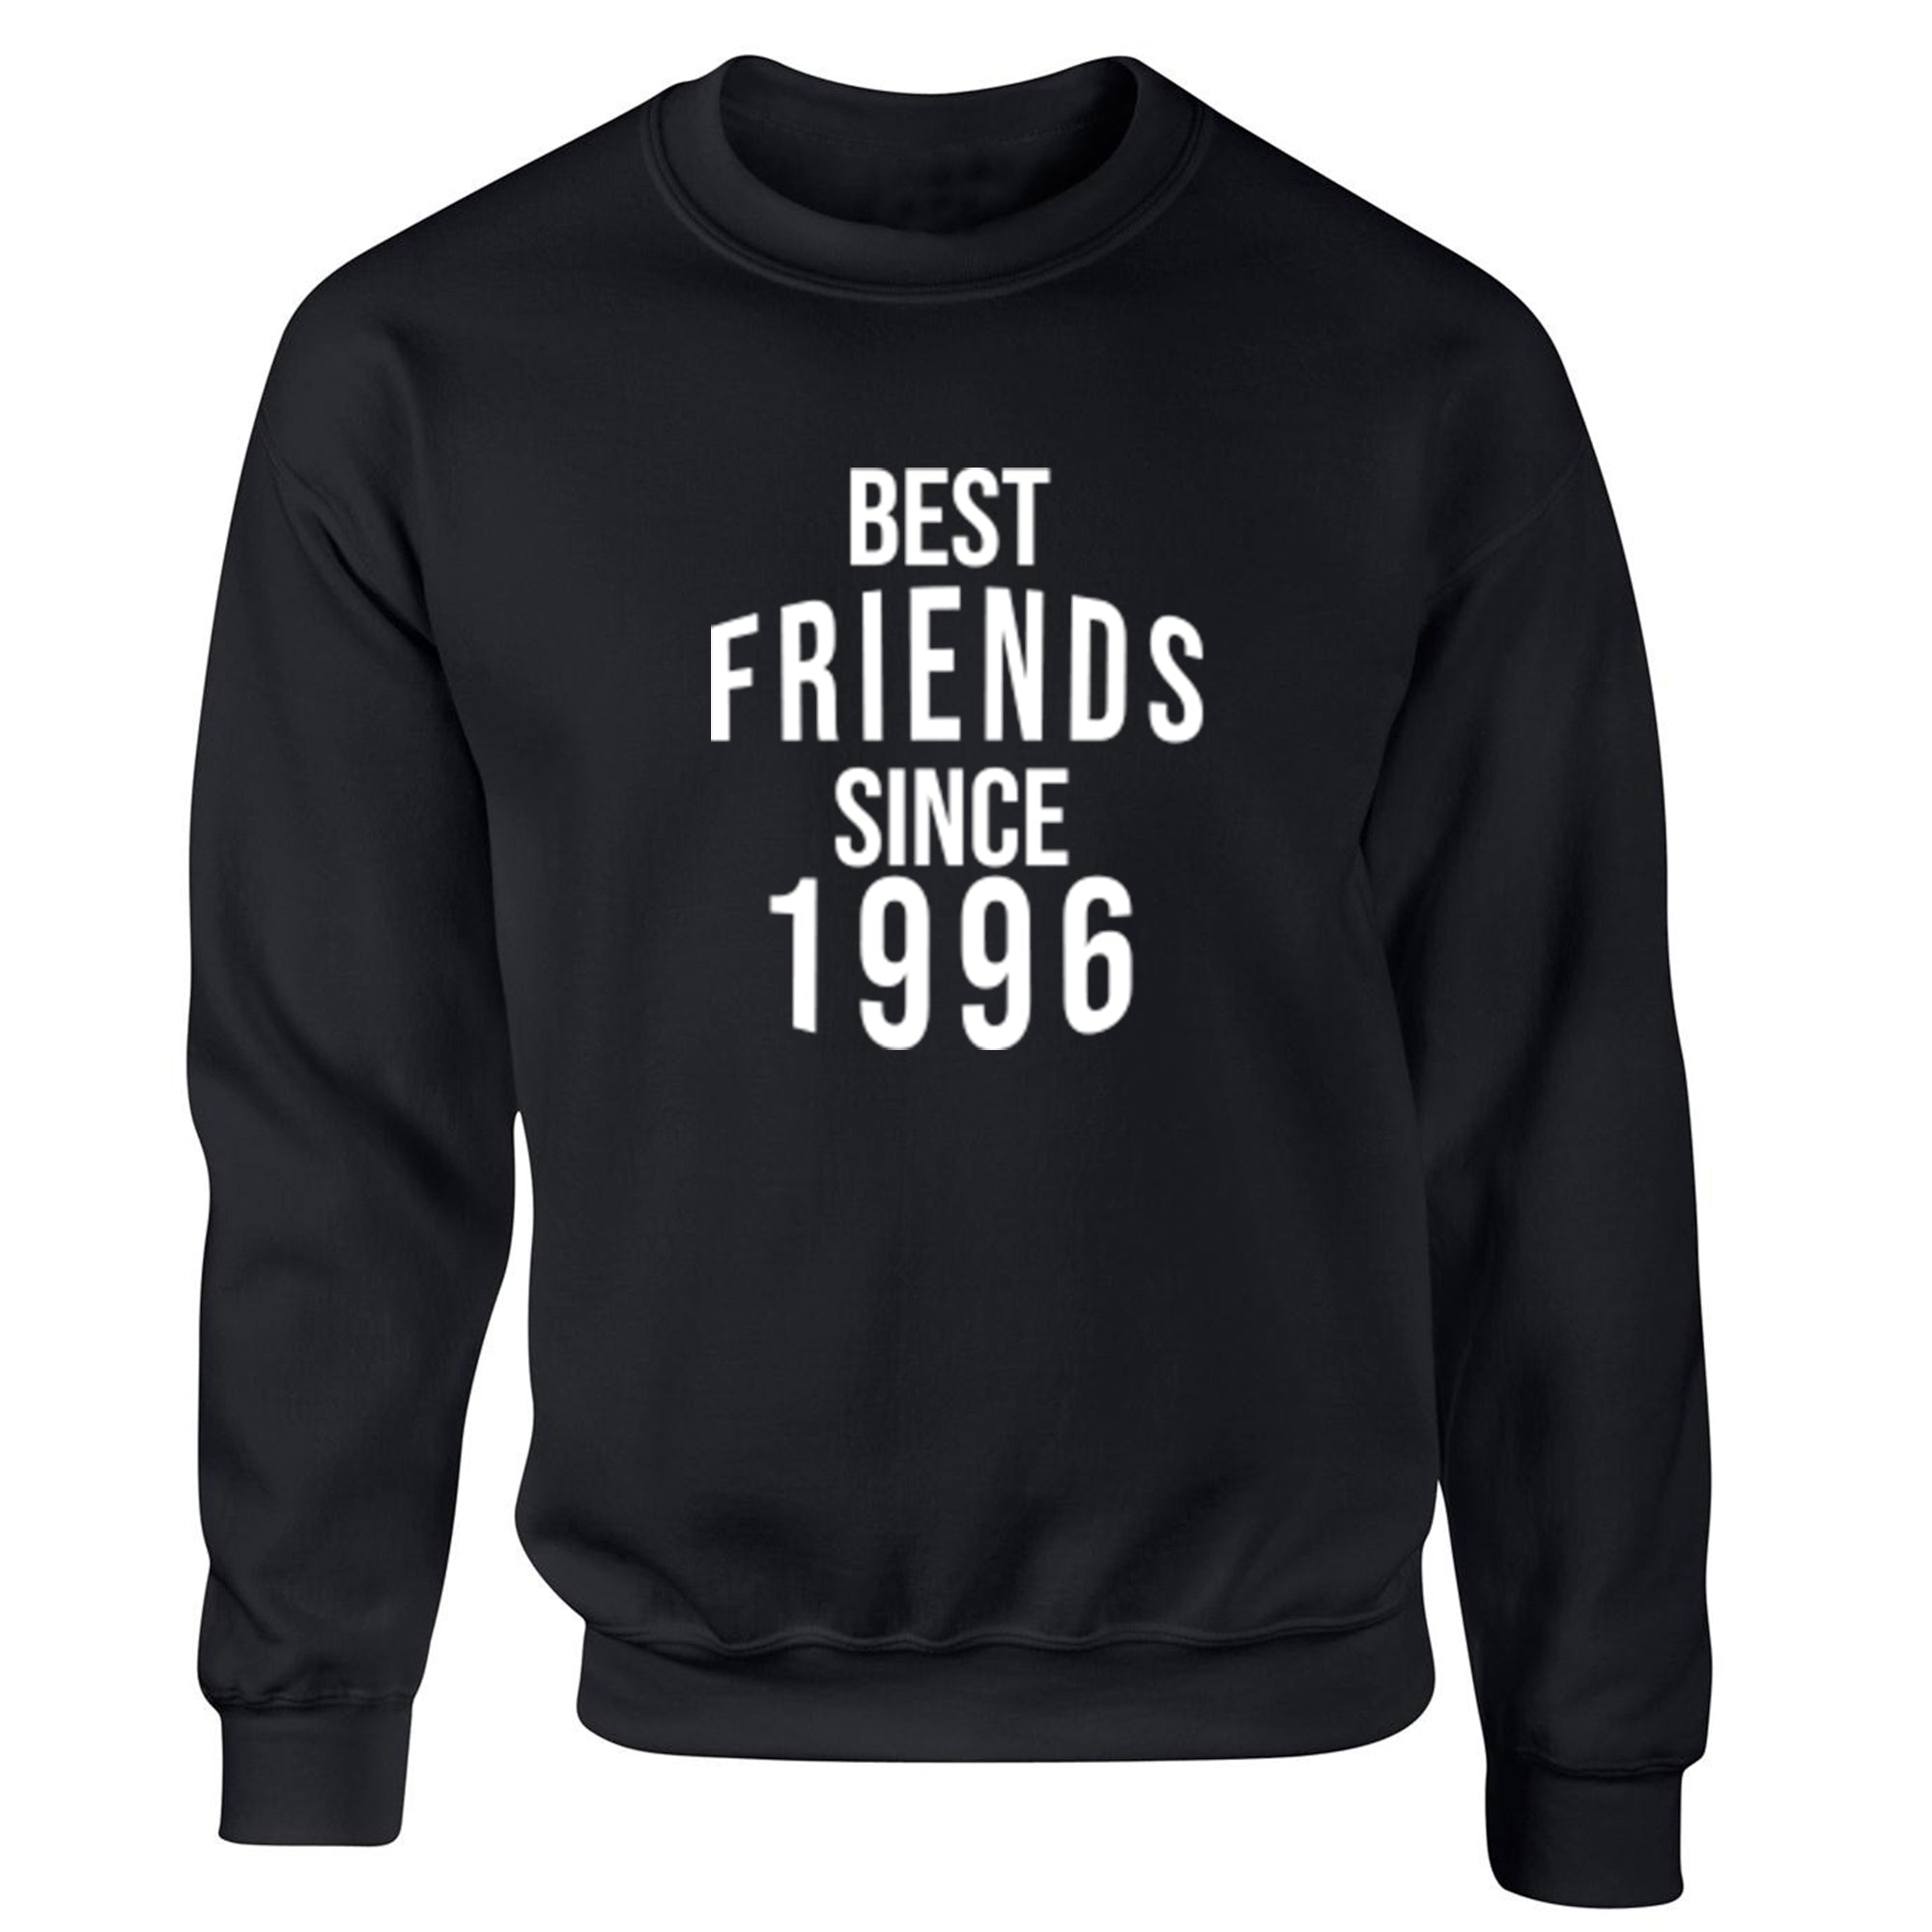 Best Friends Since 1996 Unisex Jumper S0575 - Illustrated Identity Ltd.